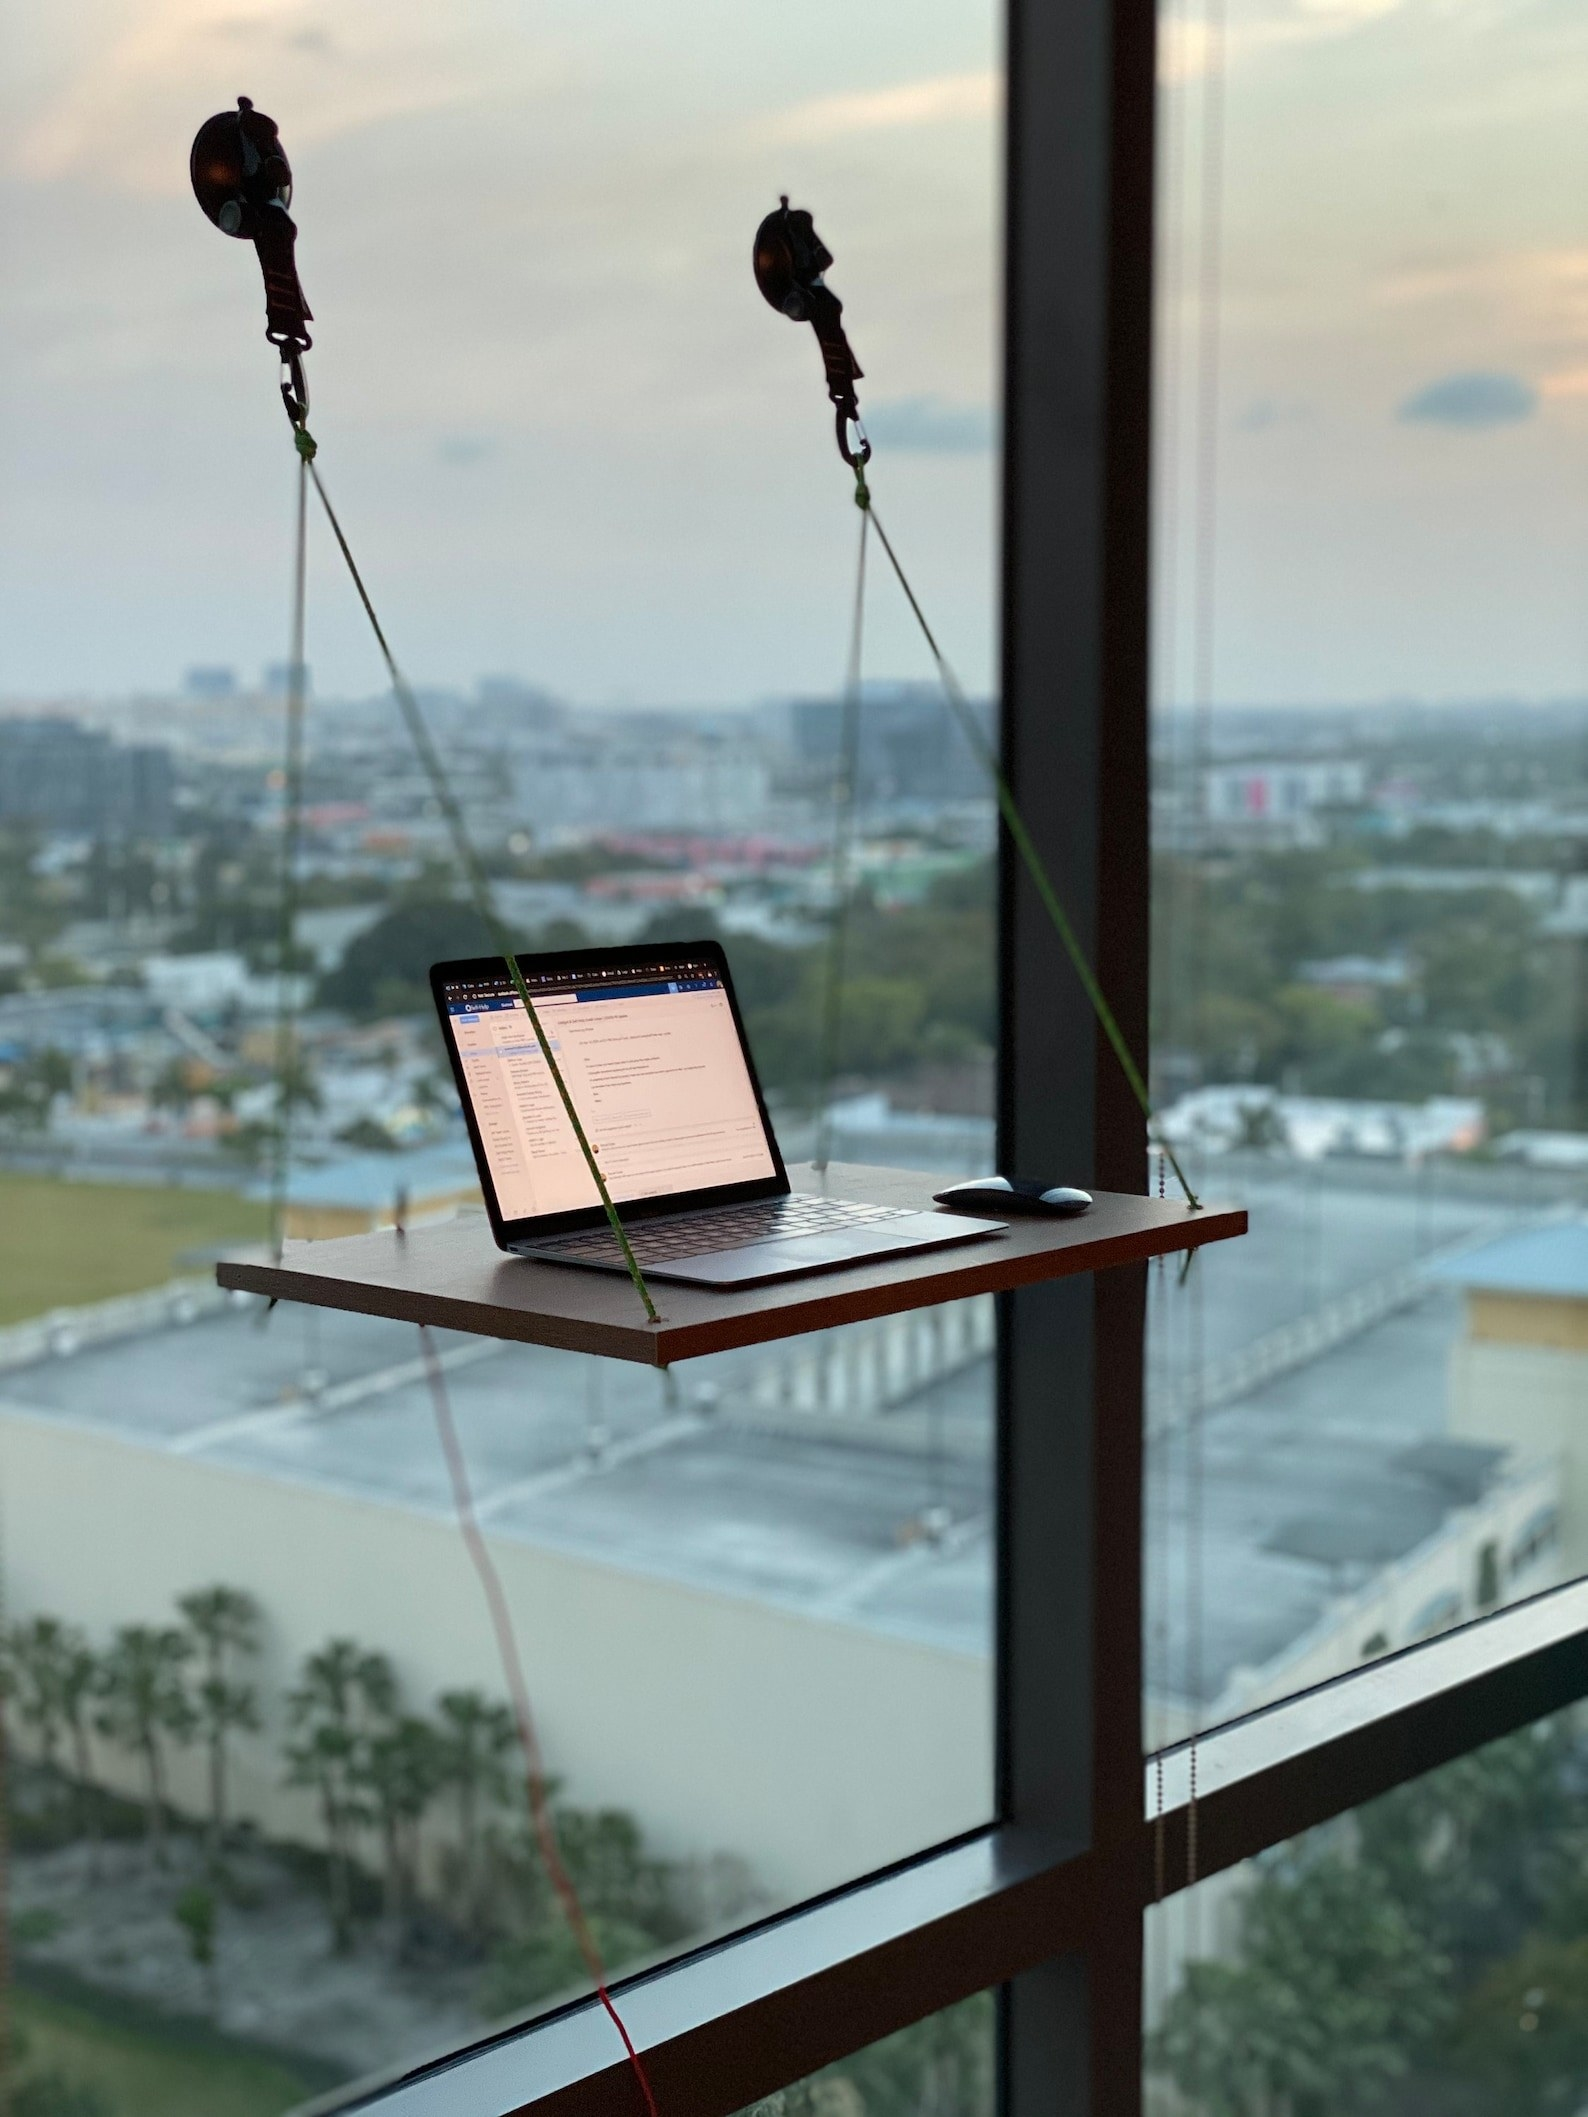 the hanging desk on a window with a laptop and mouse on it